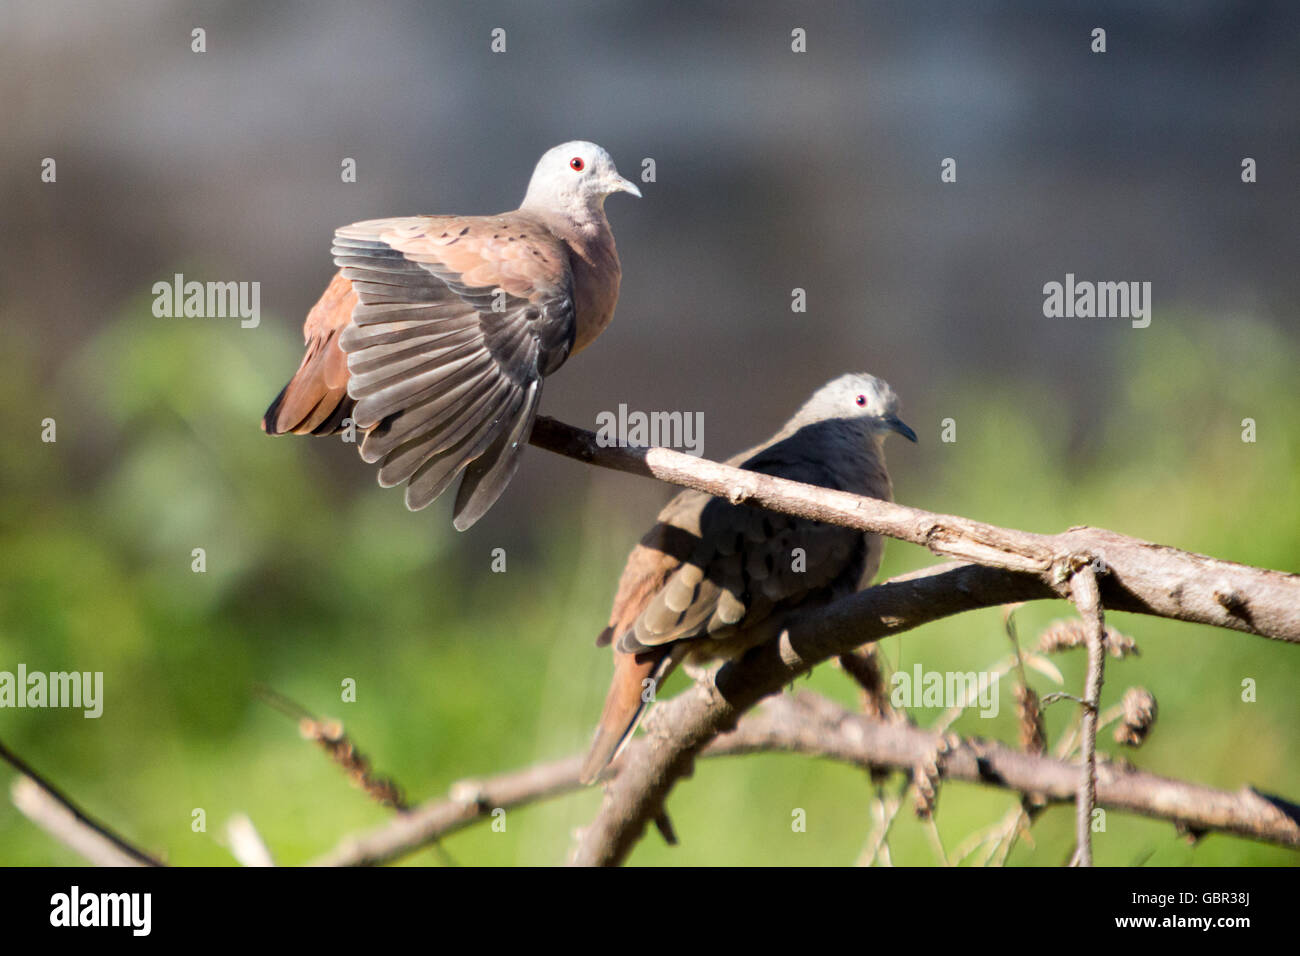 Asuncion, Paraguay. 7th July, 2016. A pair of Ruddy ground dove (Columbina talpacoti) sunbathes, one of them with Stock Photo